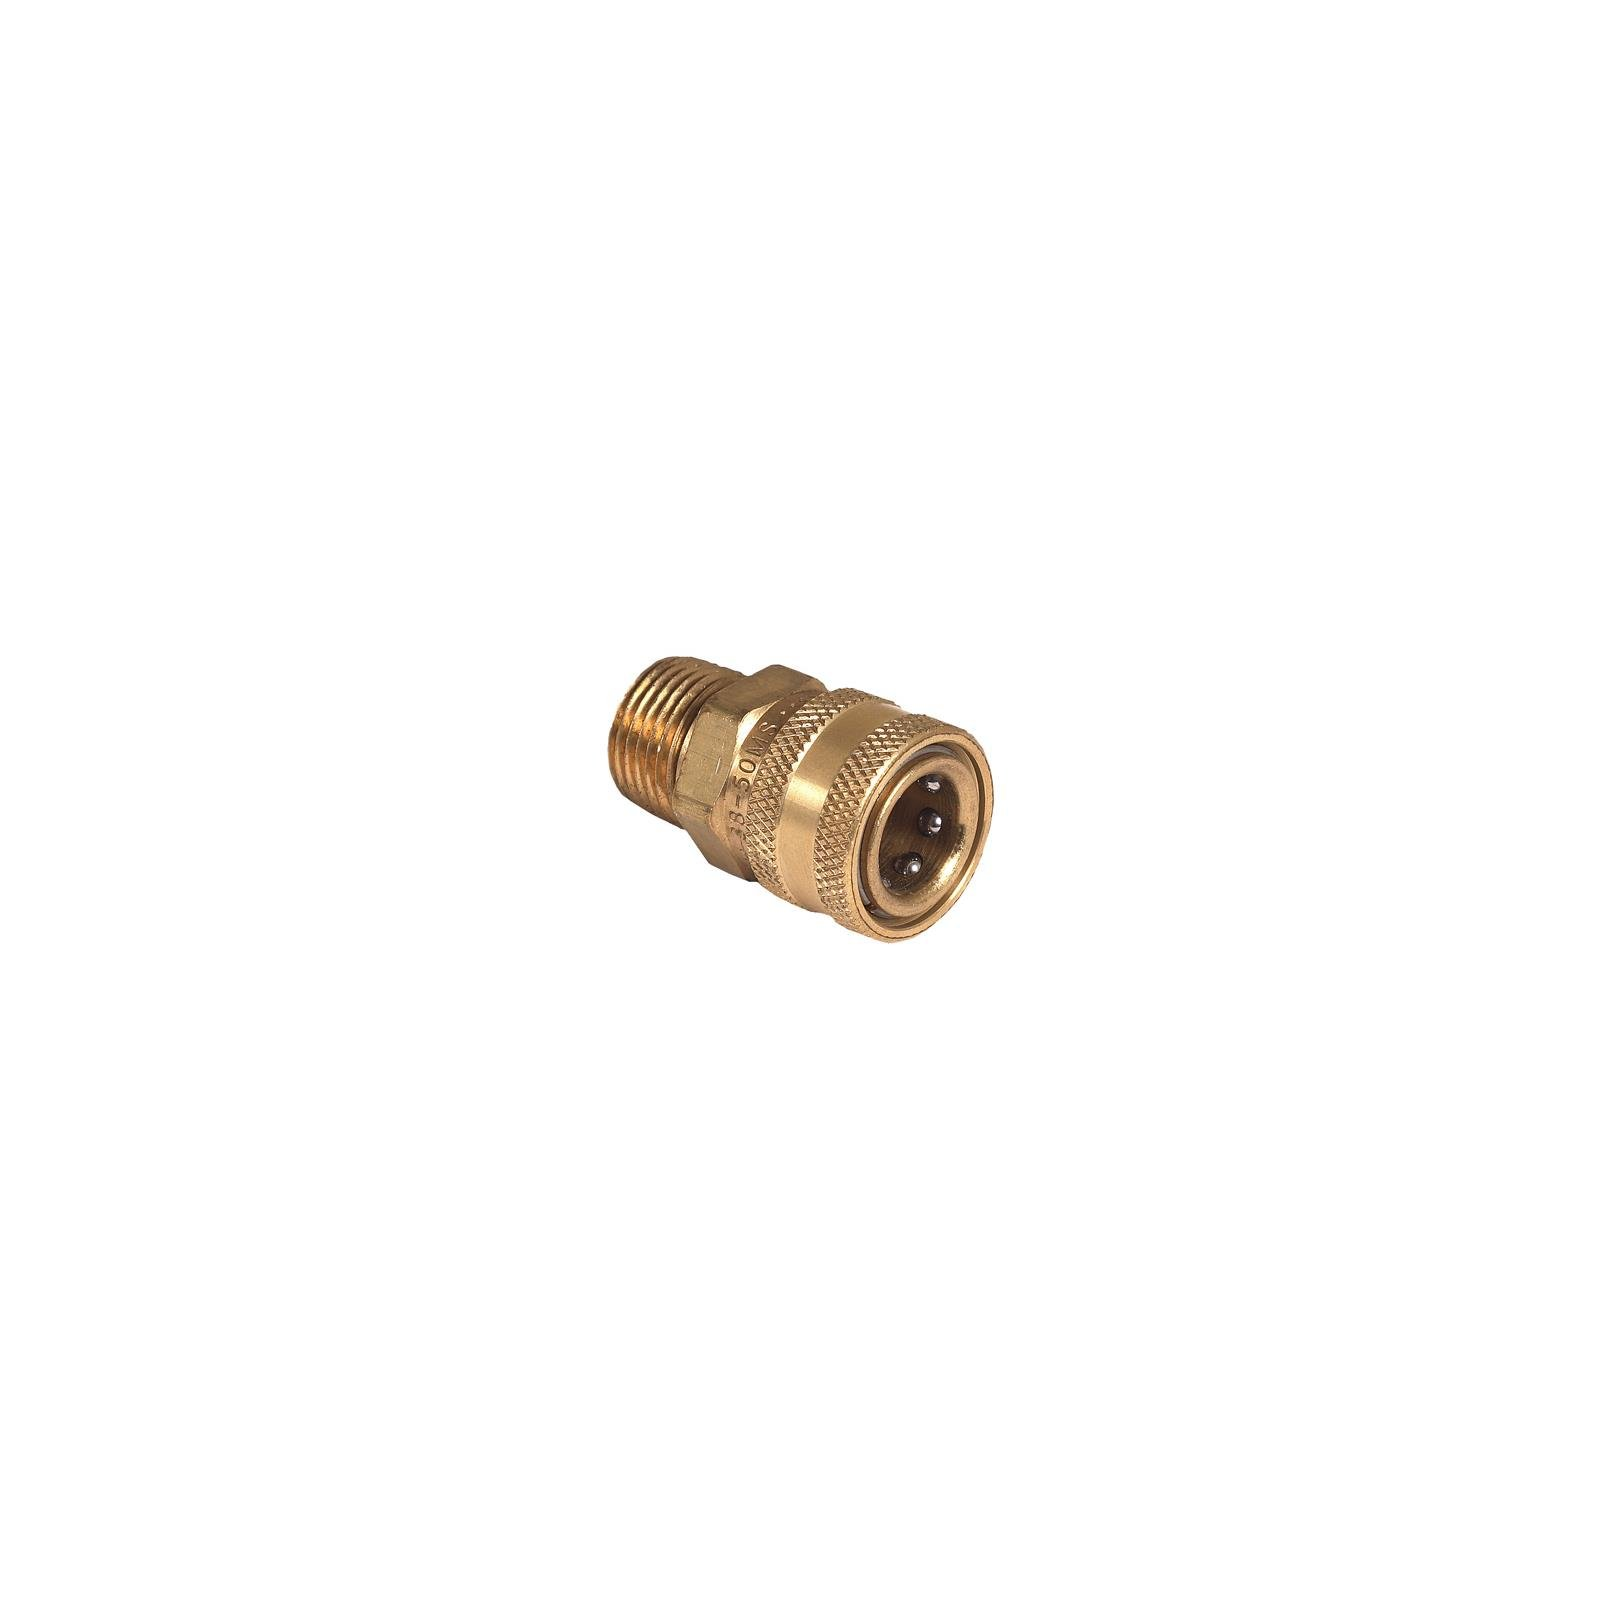 Mi T M AW-0017-0029 Pressure Washer Quick Connect Socket, Brass, 1/2 MNPT x 3/8-In. - Quantity 4